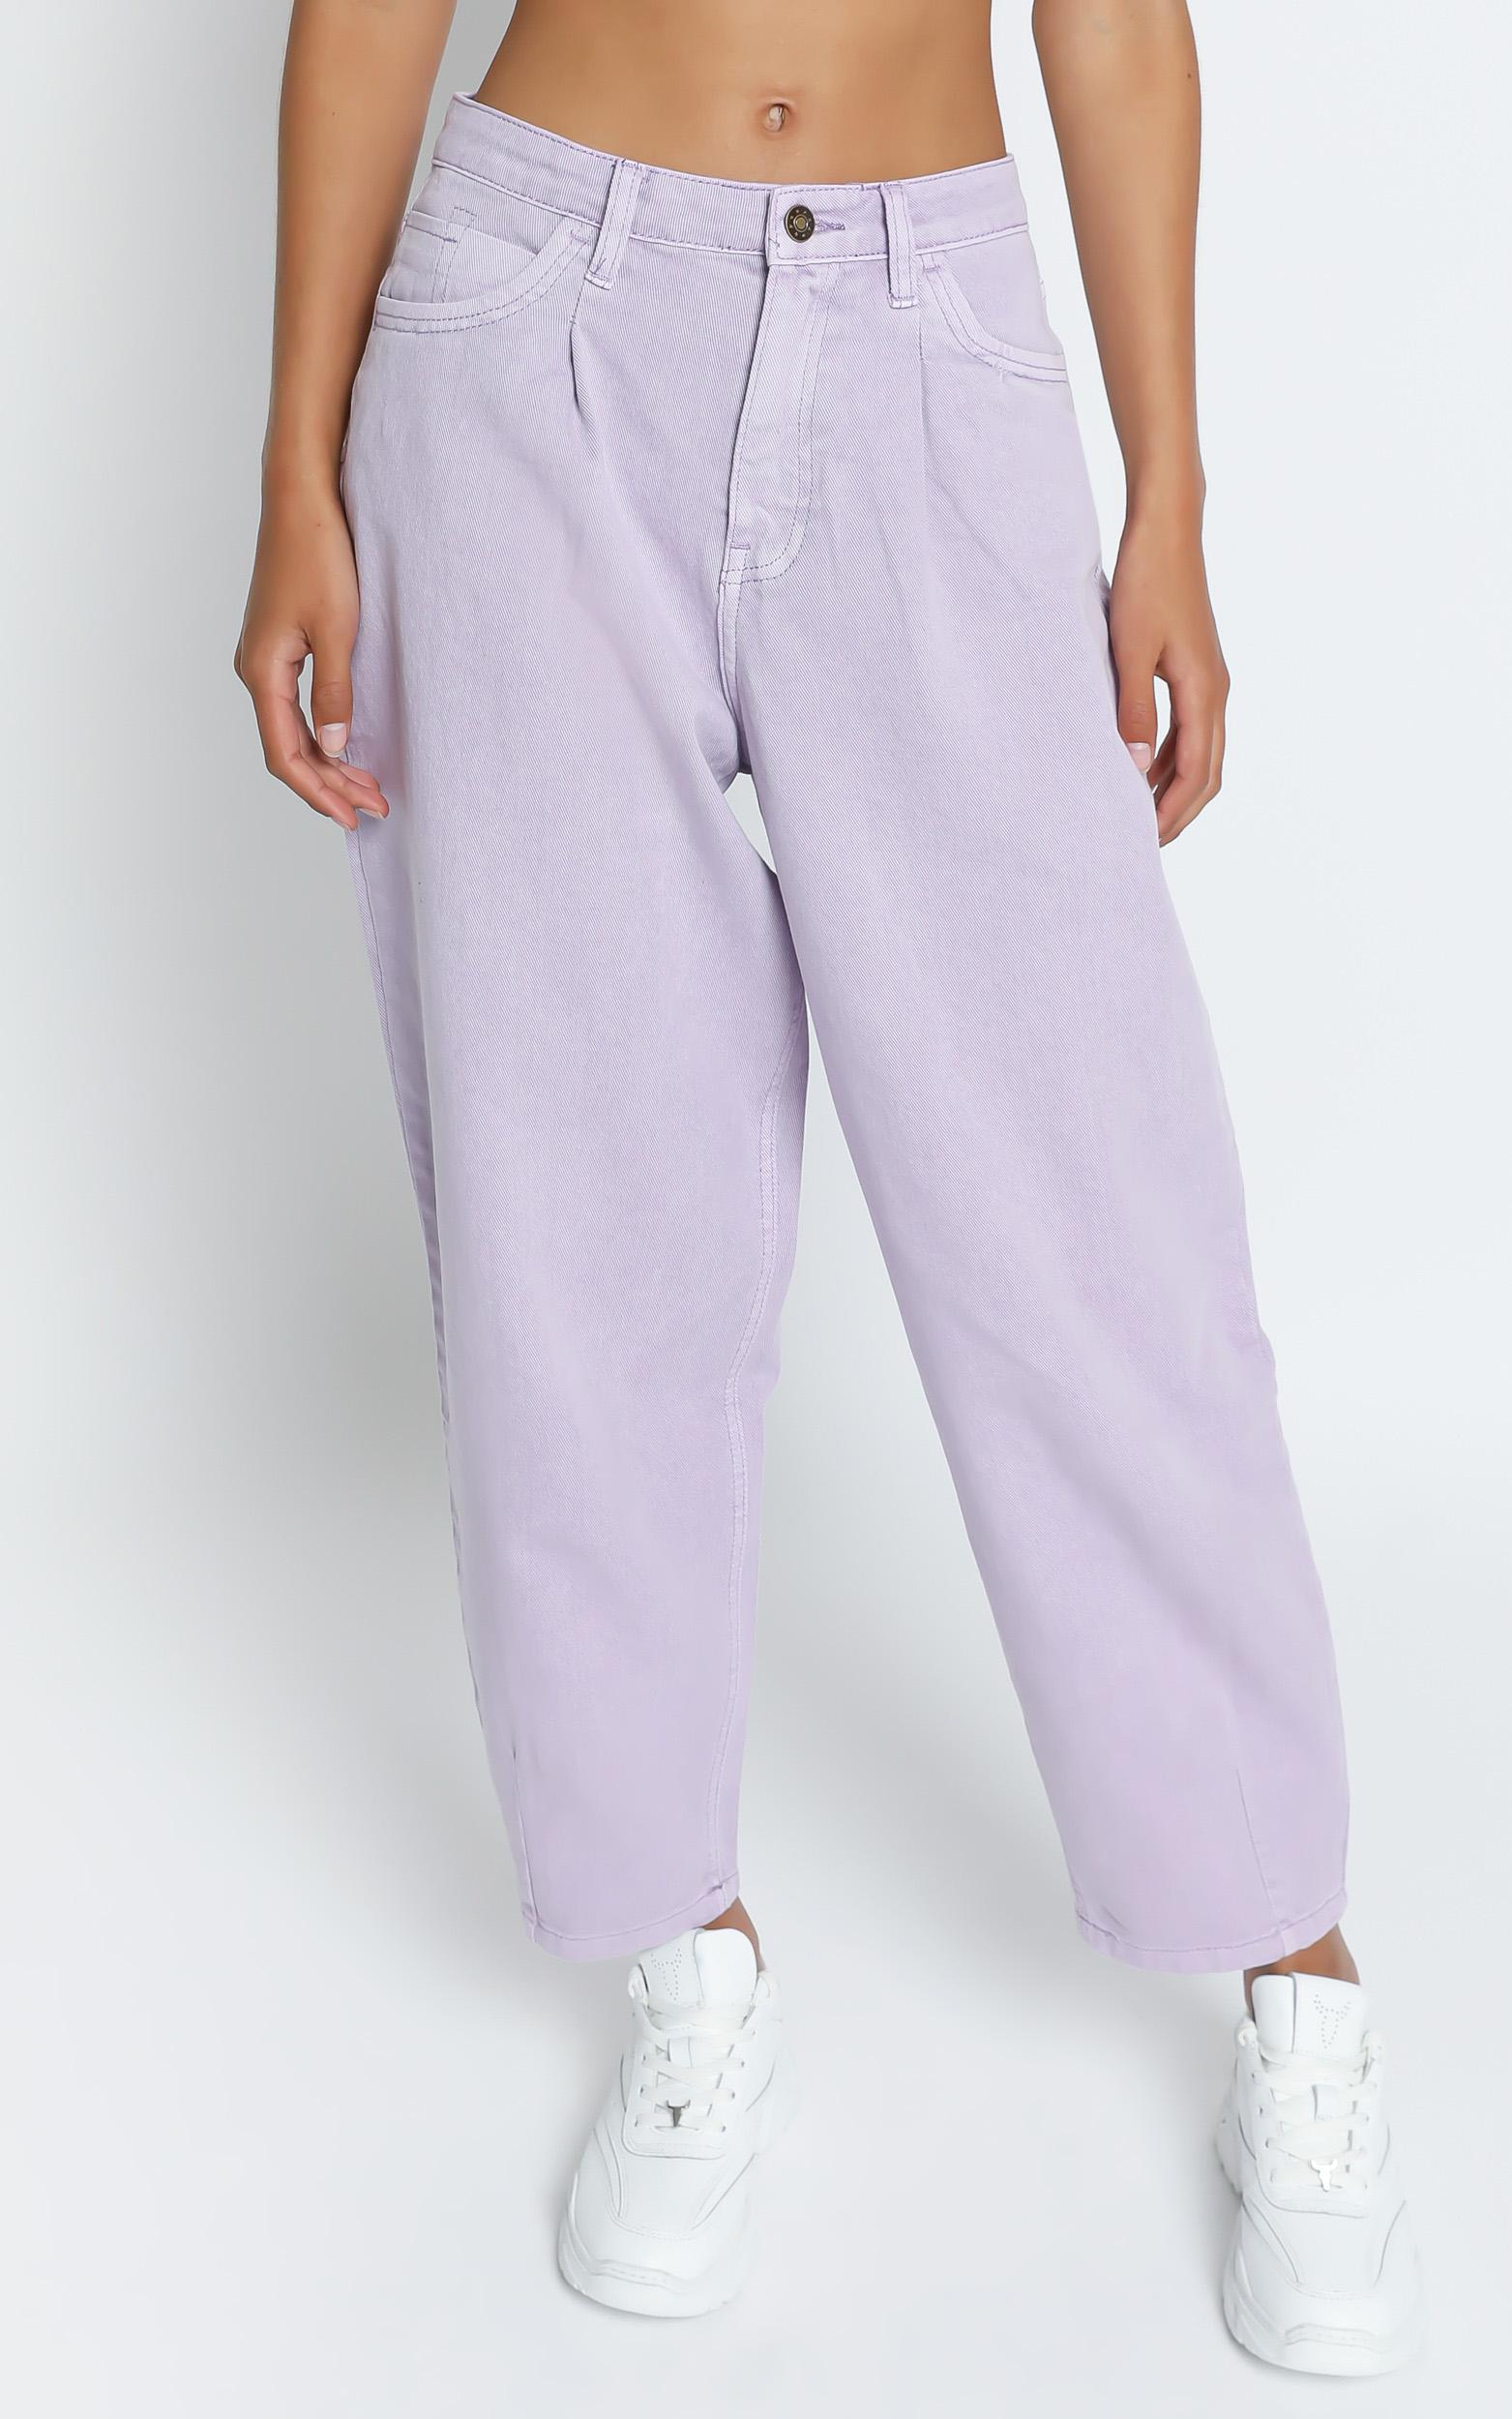 Lioness - On My Way Denim Jean in Lilac - 4 (XXS), PRP1, hi-res image number null